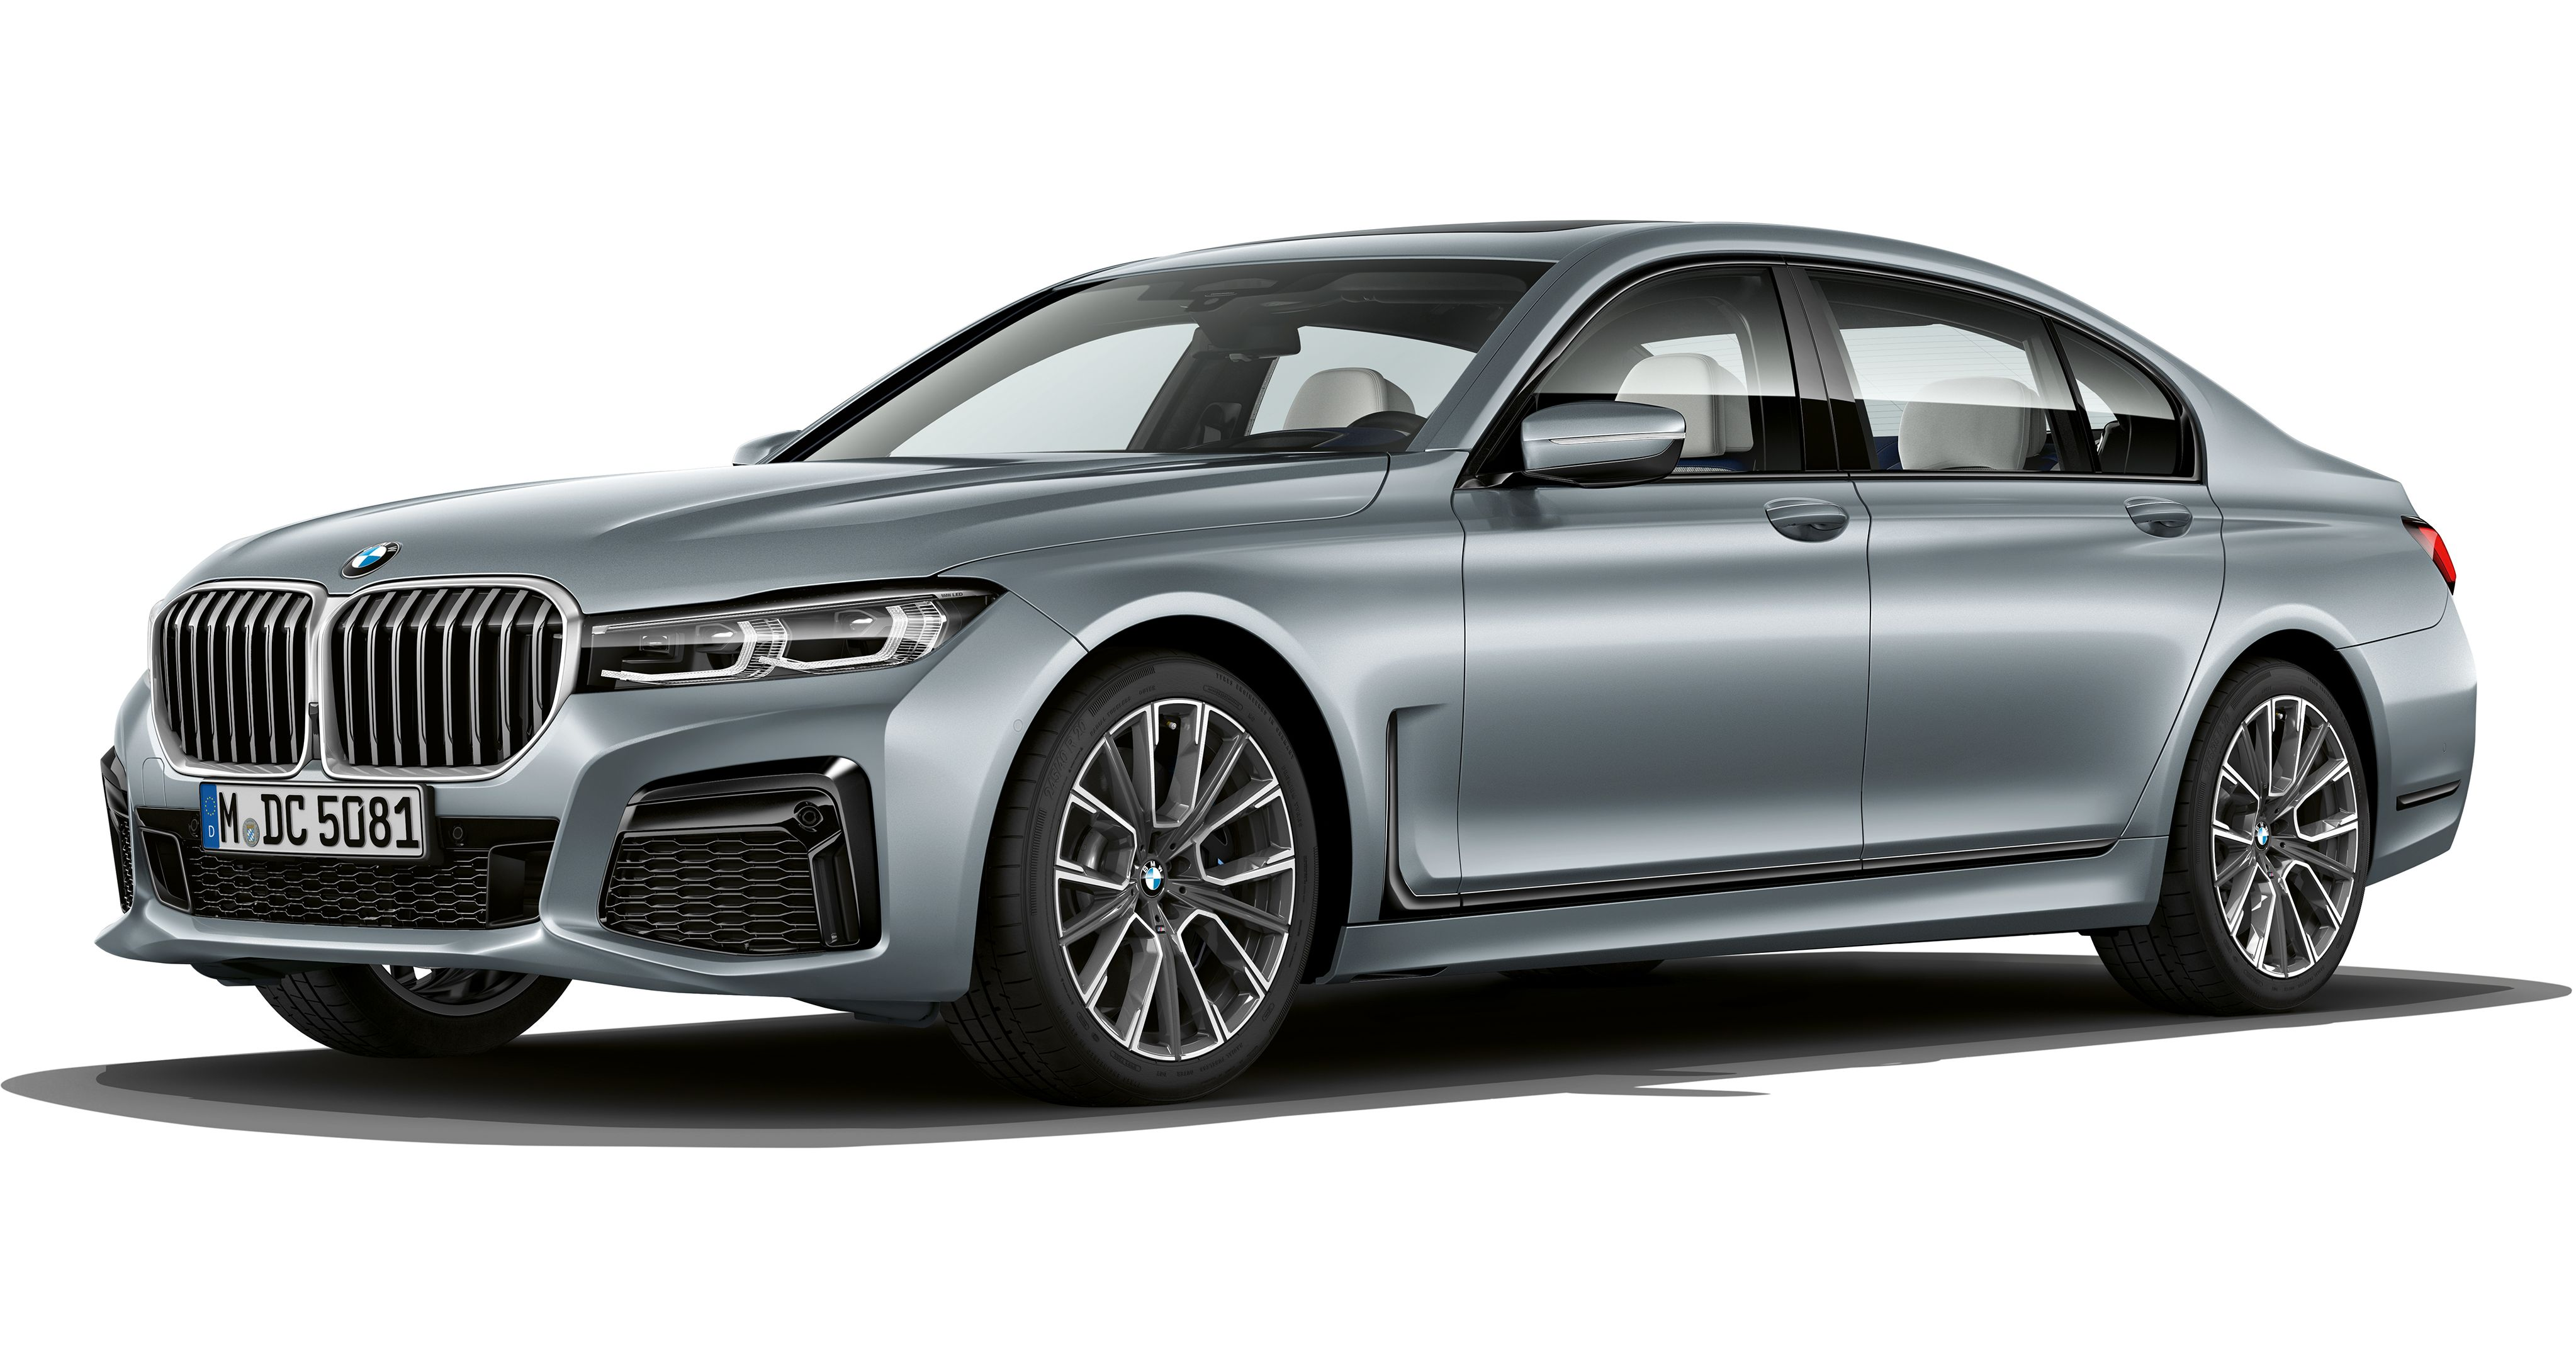 Bmw Product Updates For 2021 Model Year More Mild Hybrid Variants New Diesel Straight Six Android Auto Paultan Org